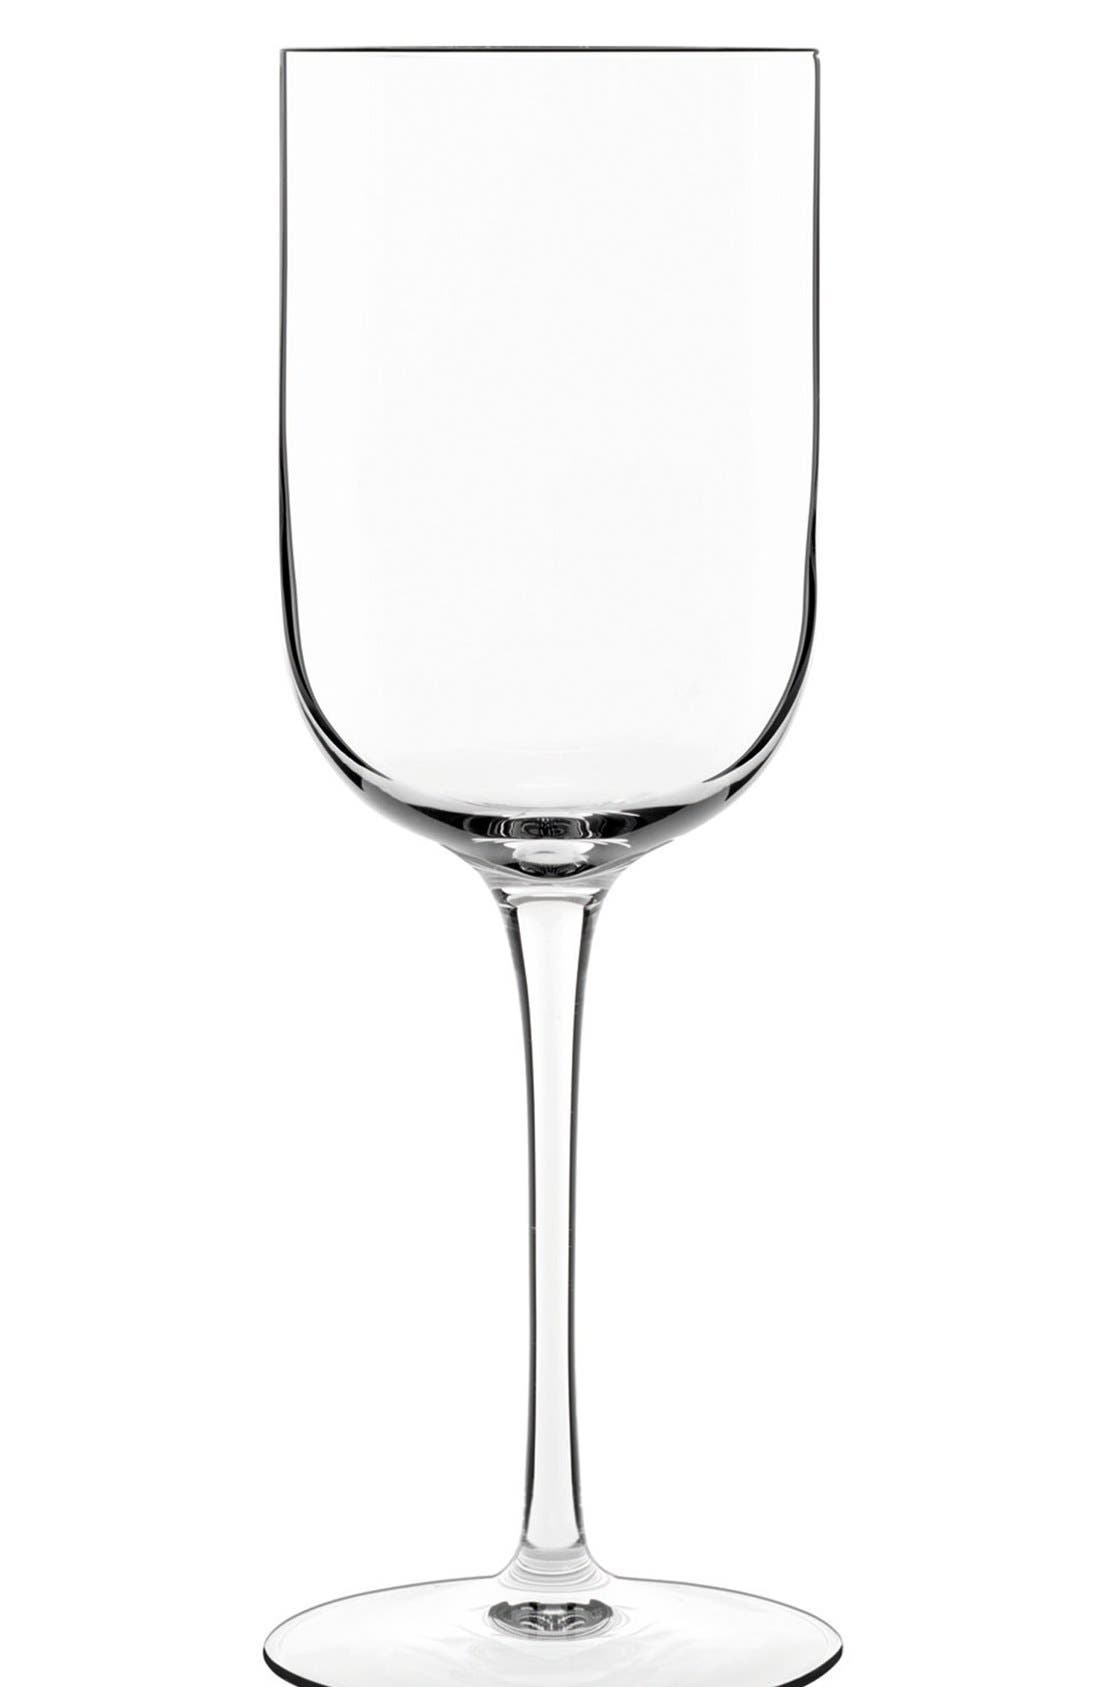 Alternate Image 1 Selected - Luigi Bormioli 'Sublime' White Wine Glasses (Set of 4)